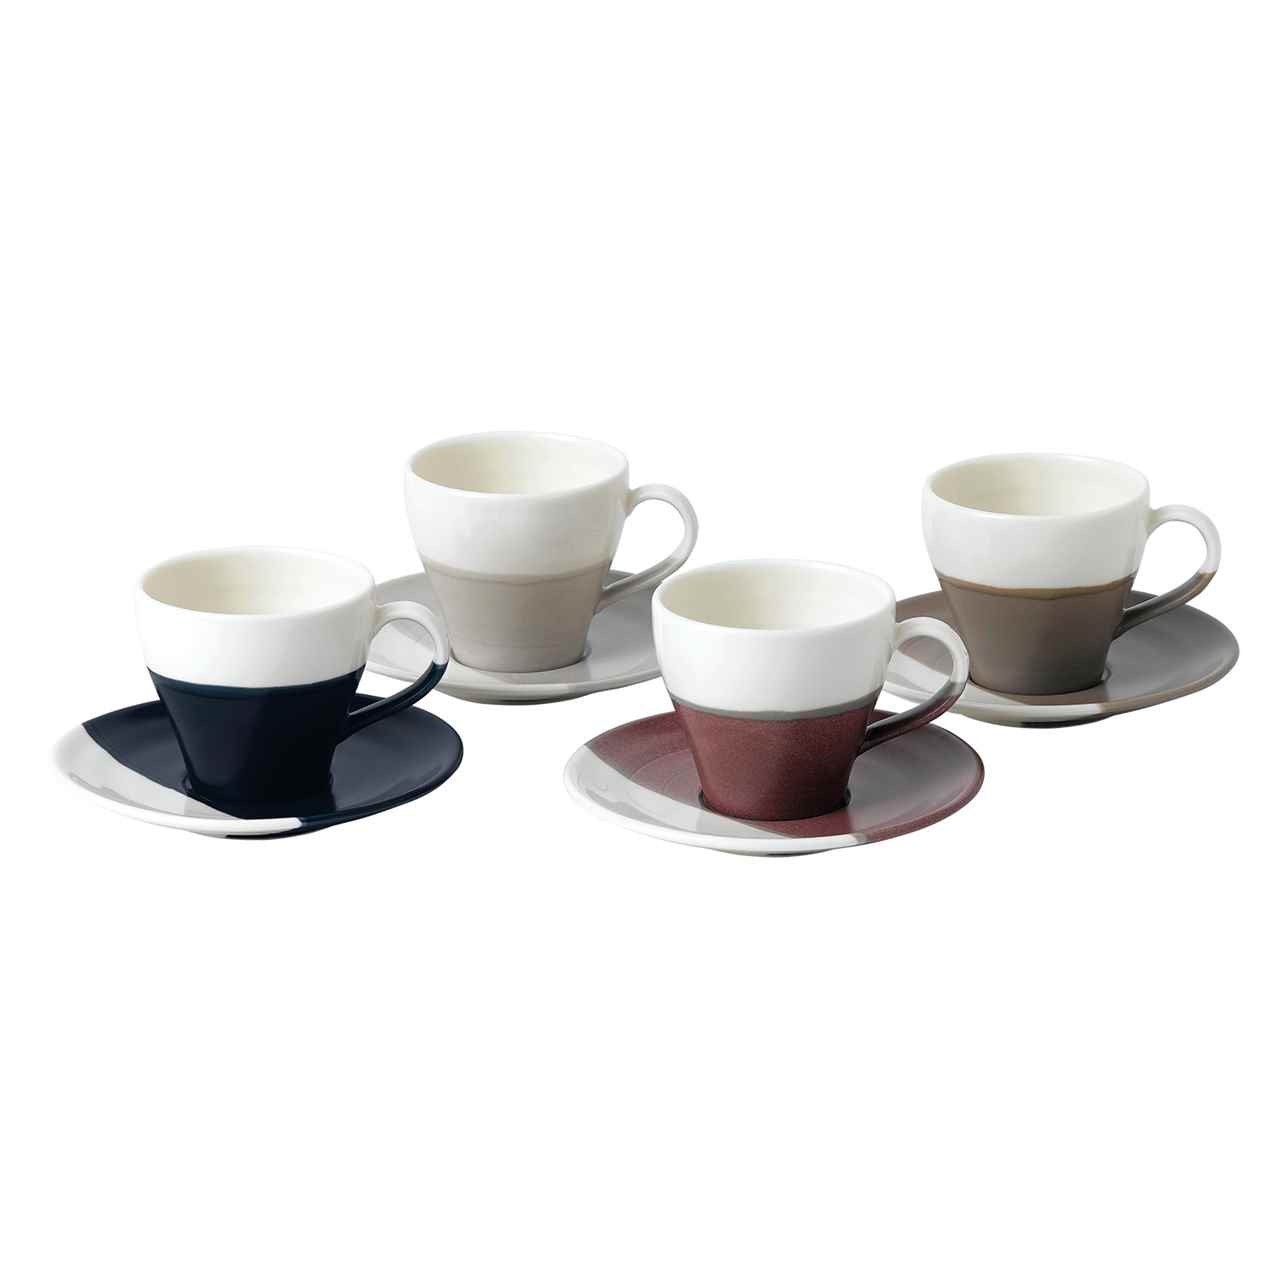 Coffee Studio Espresso Cup and Saucer (Set of 4)